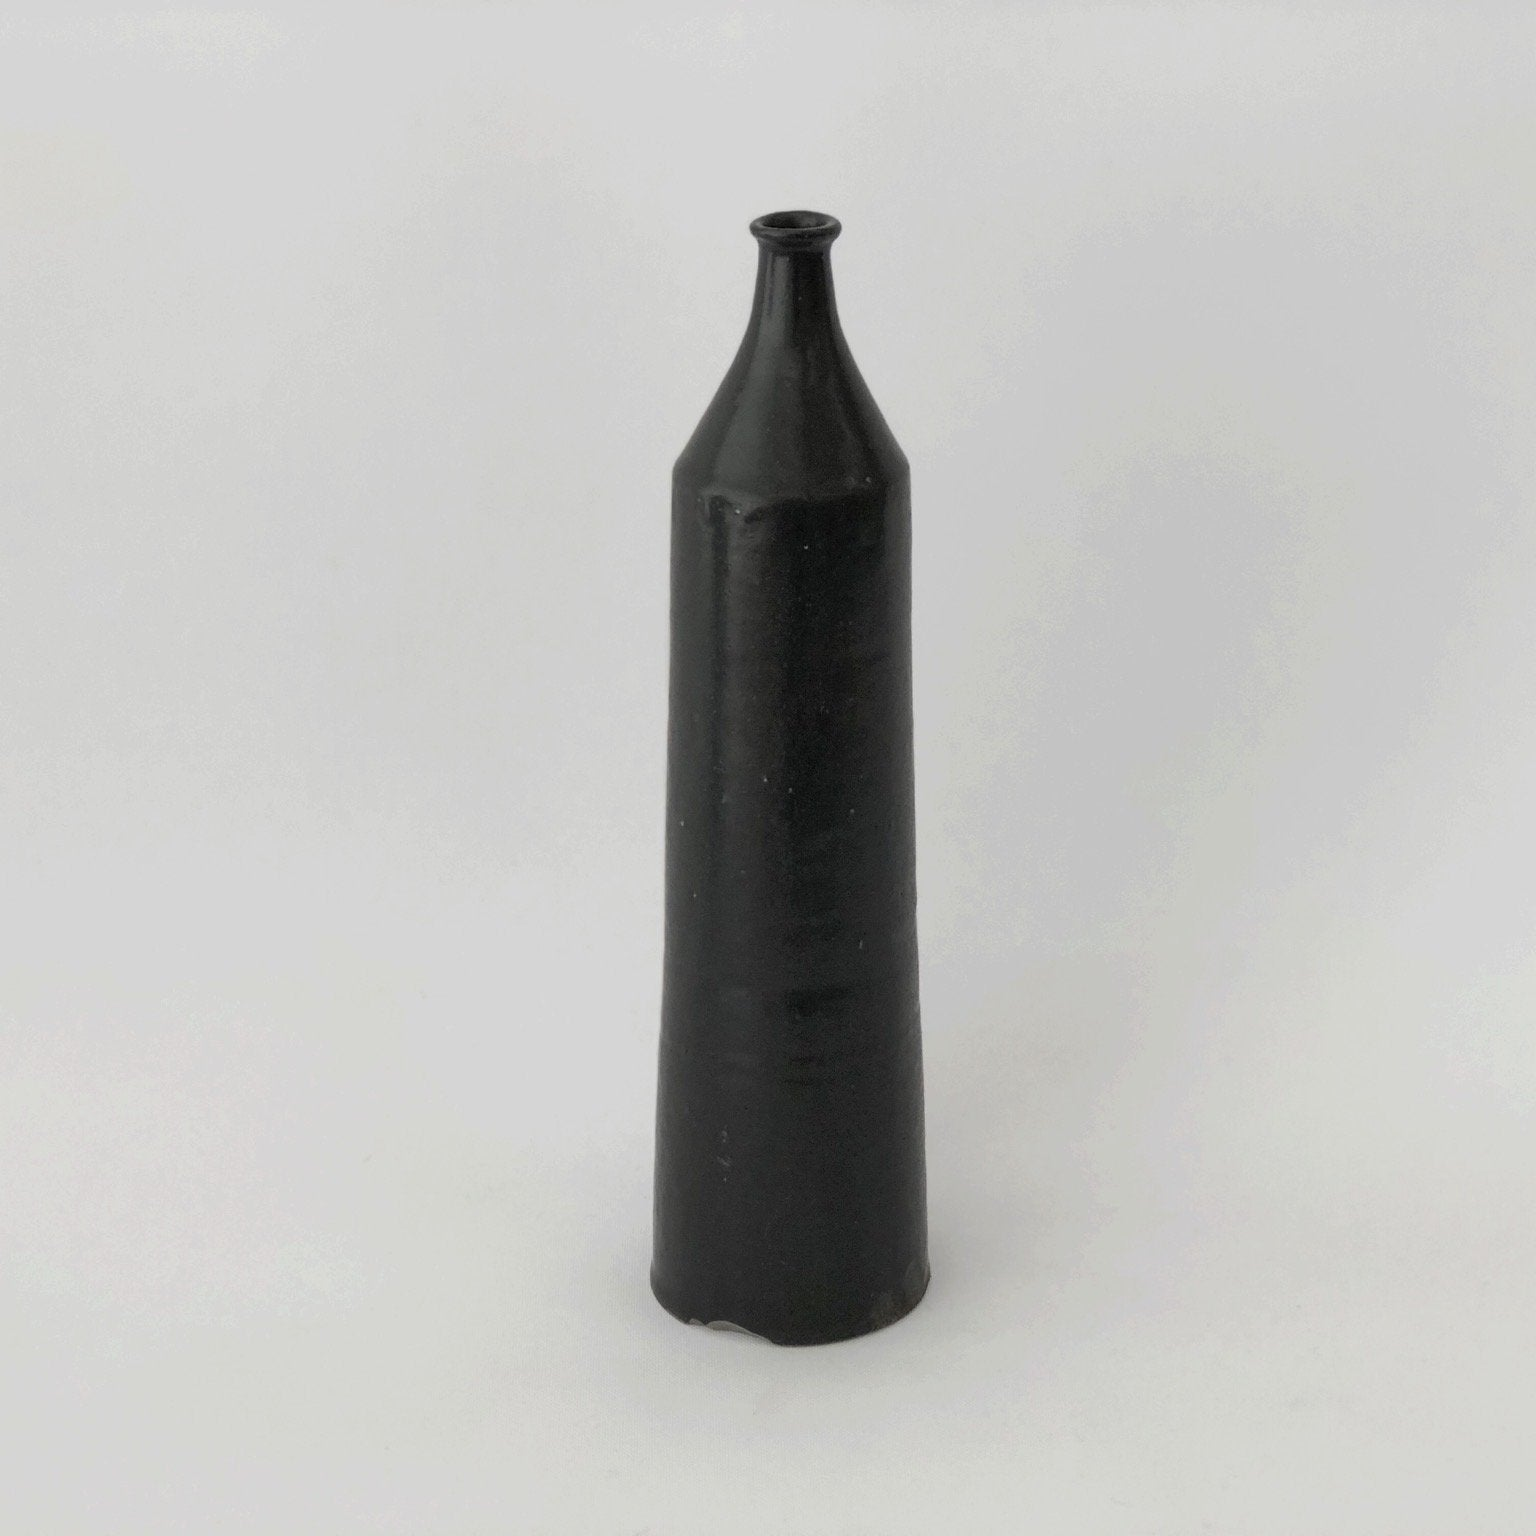 Tall Black Ceramic Vase by Naotsugu Yoshida - tortoise general store